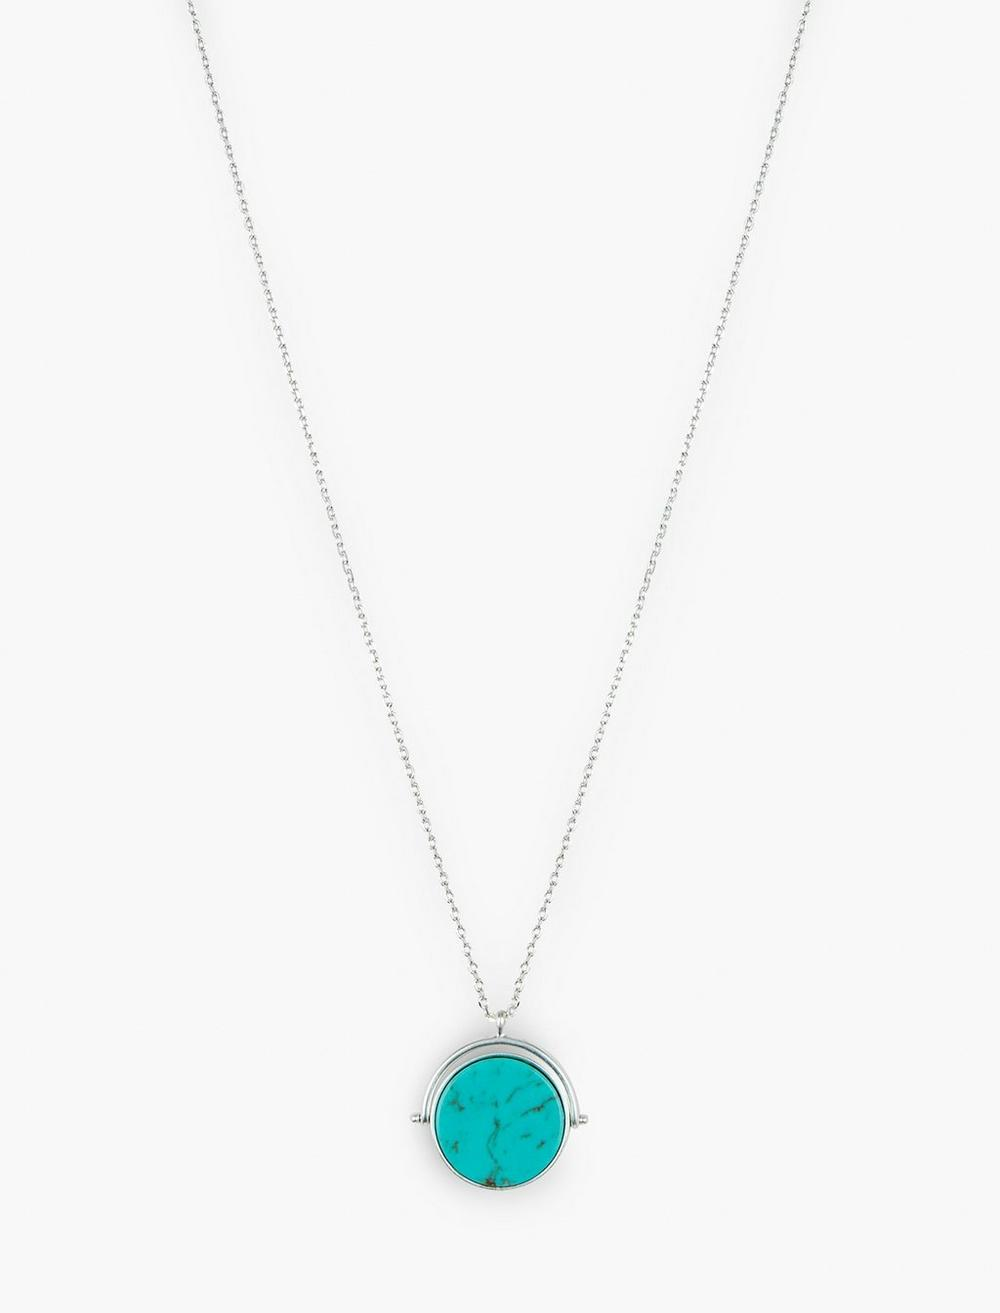 SPINNER PENDANT NECKLACE, image 1